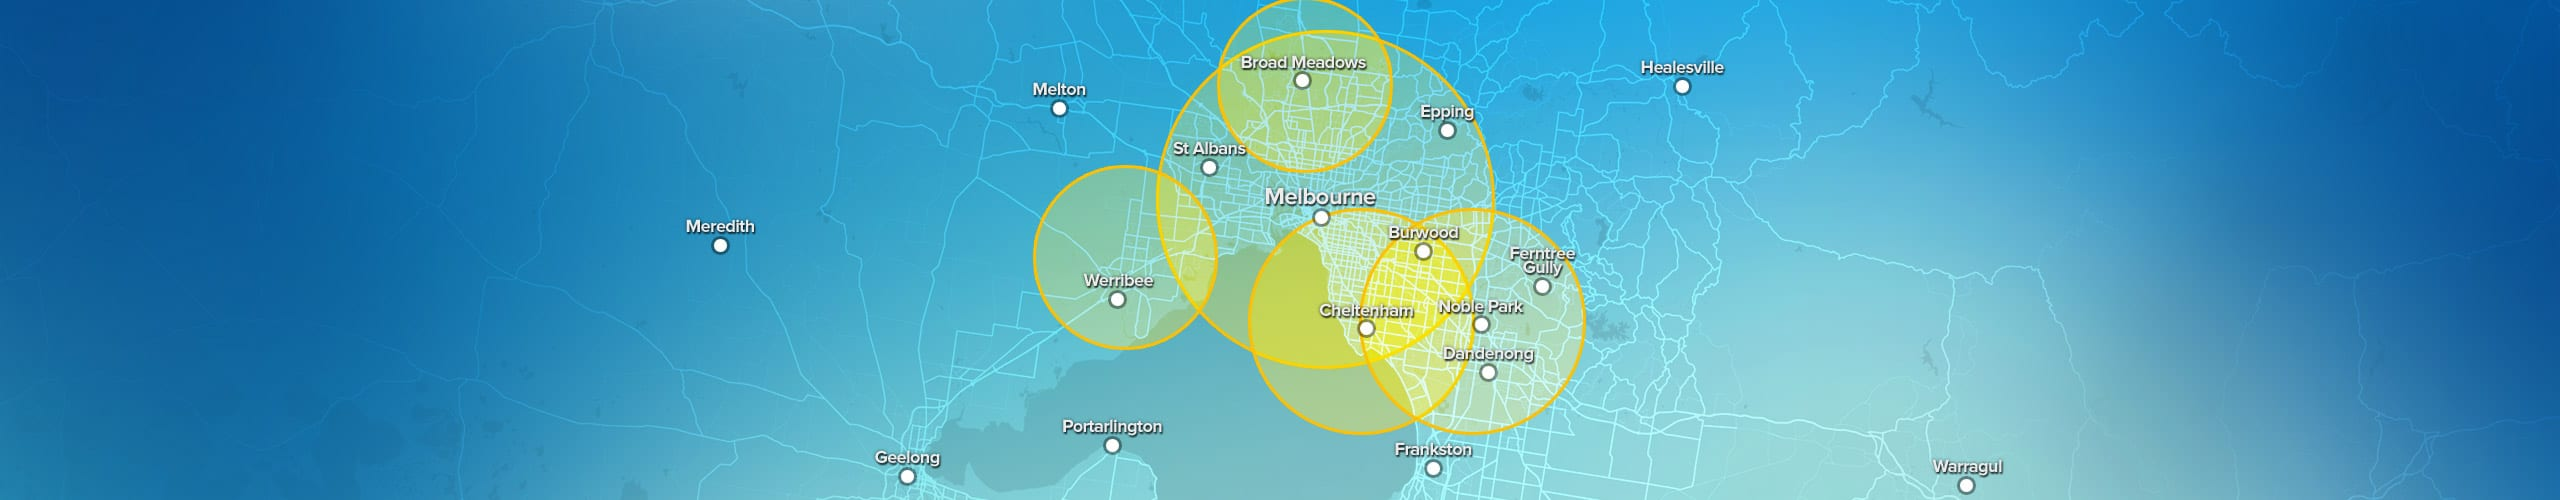 Rocket Networks Fixed Wireless Internet Broadband Services for Melbourne Metro Area Coverage Map